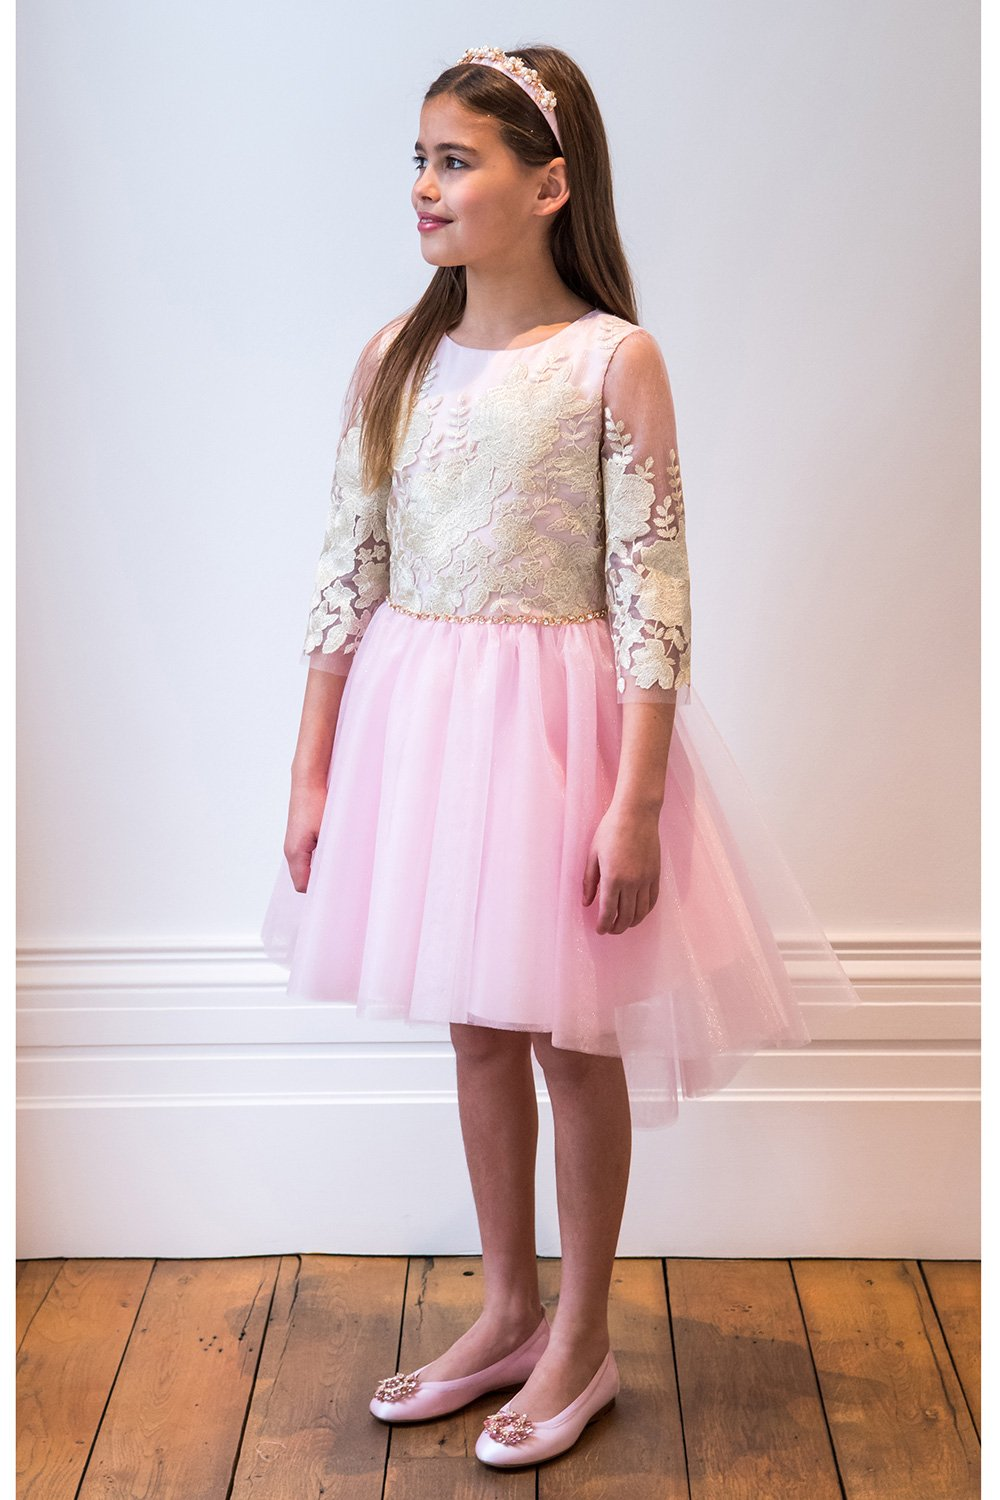 Vestido rosa y dorado Starlet - David Charles Childrens Wear